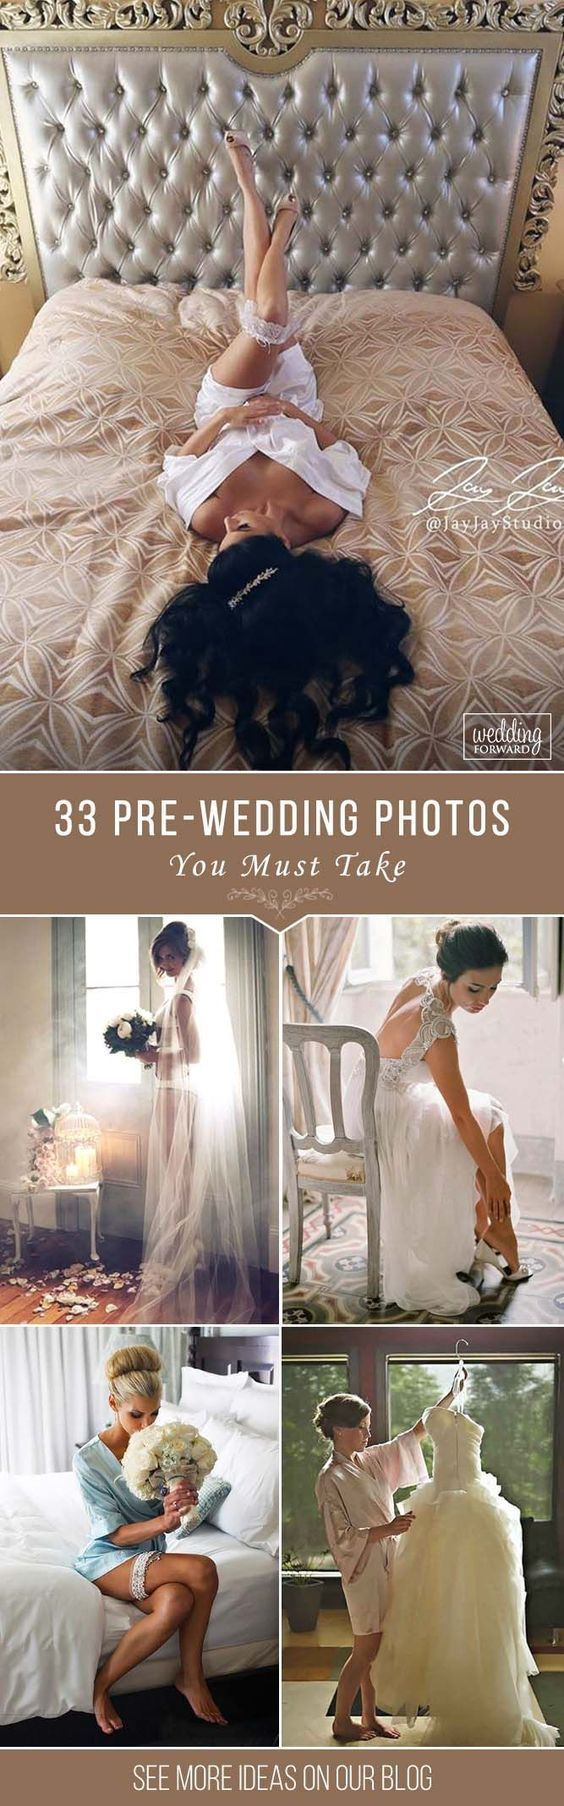 Capturing good pictures on your wedding day is very important, so you have to be prepared. In our pre-wedding photos we will give you some inspiration! -- Check out this great tip #Wedding